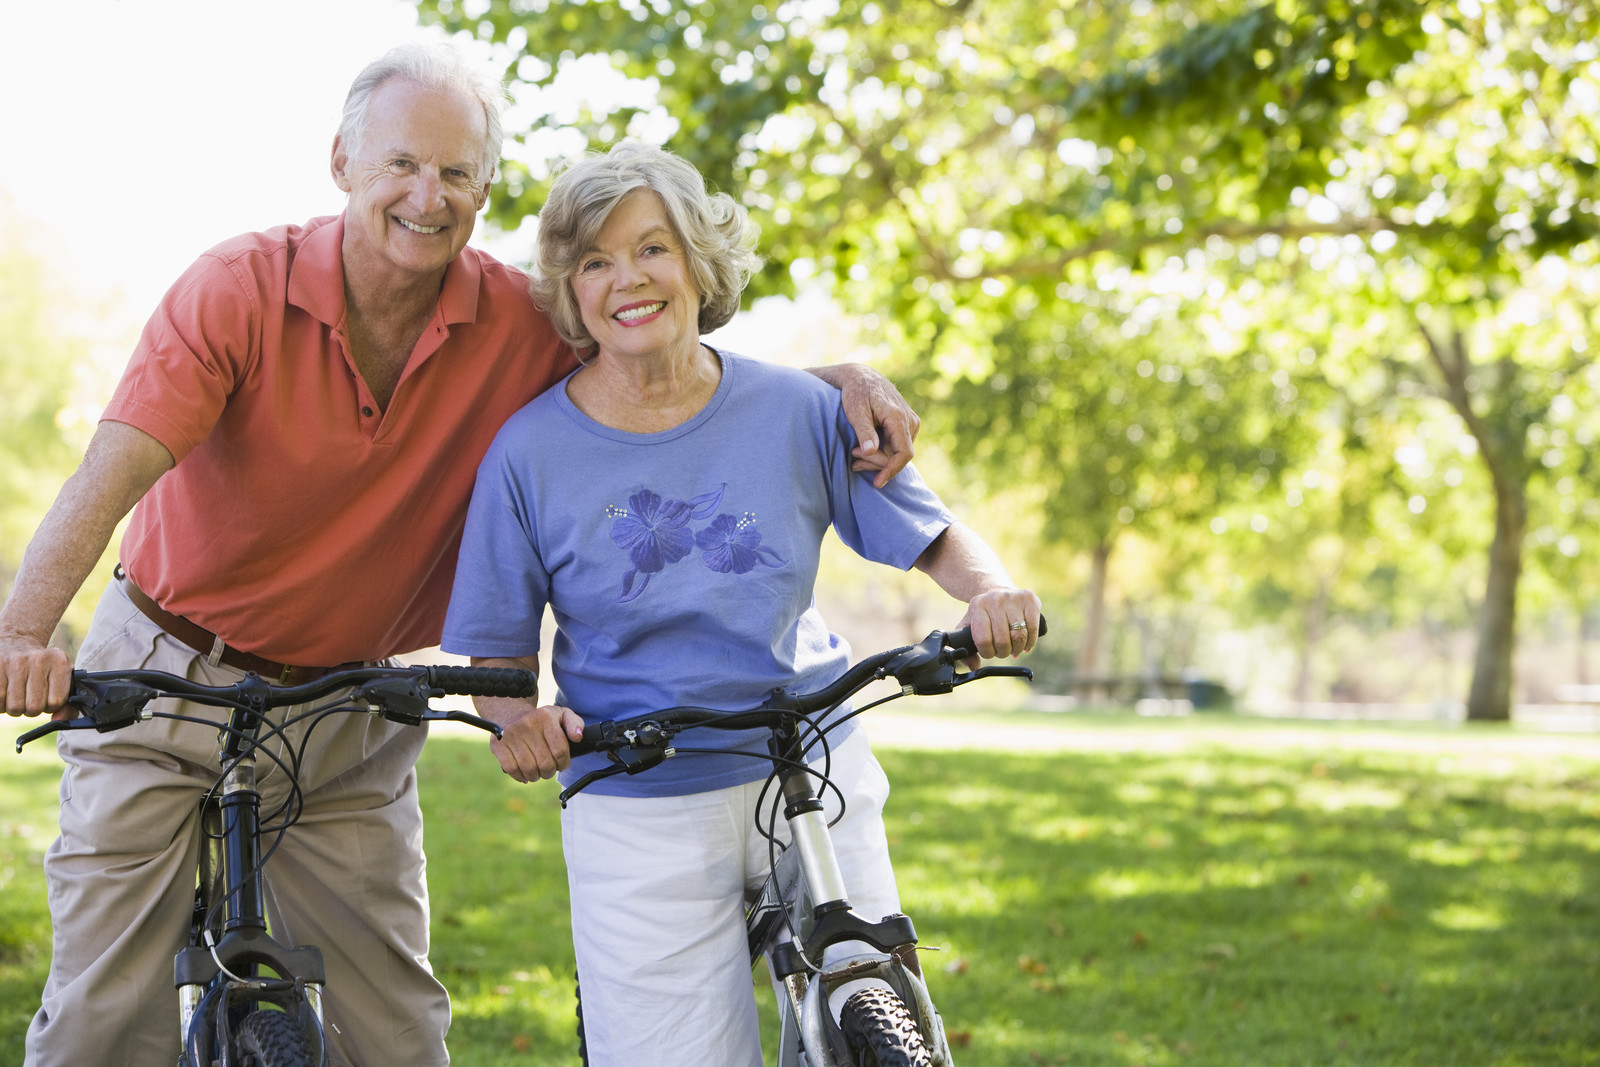 Senior couple on a sunny day in the park sitting on their bicycles